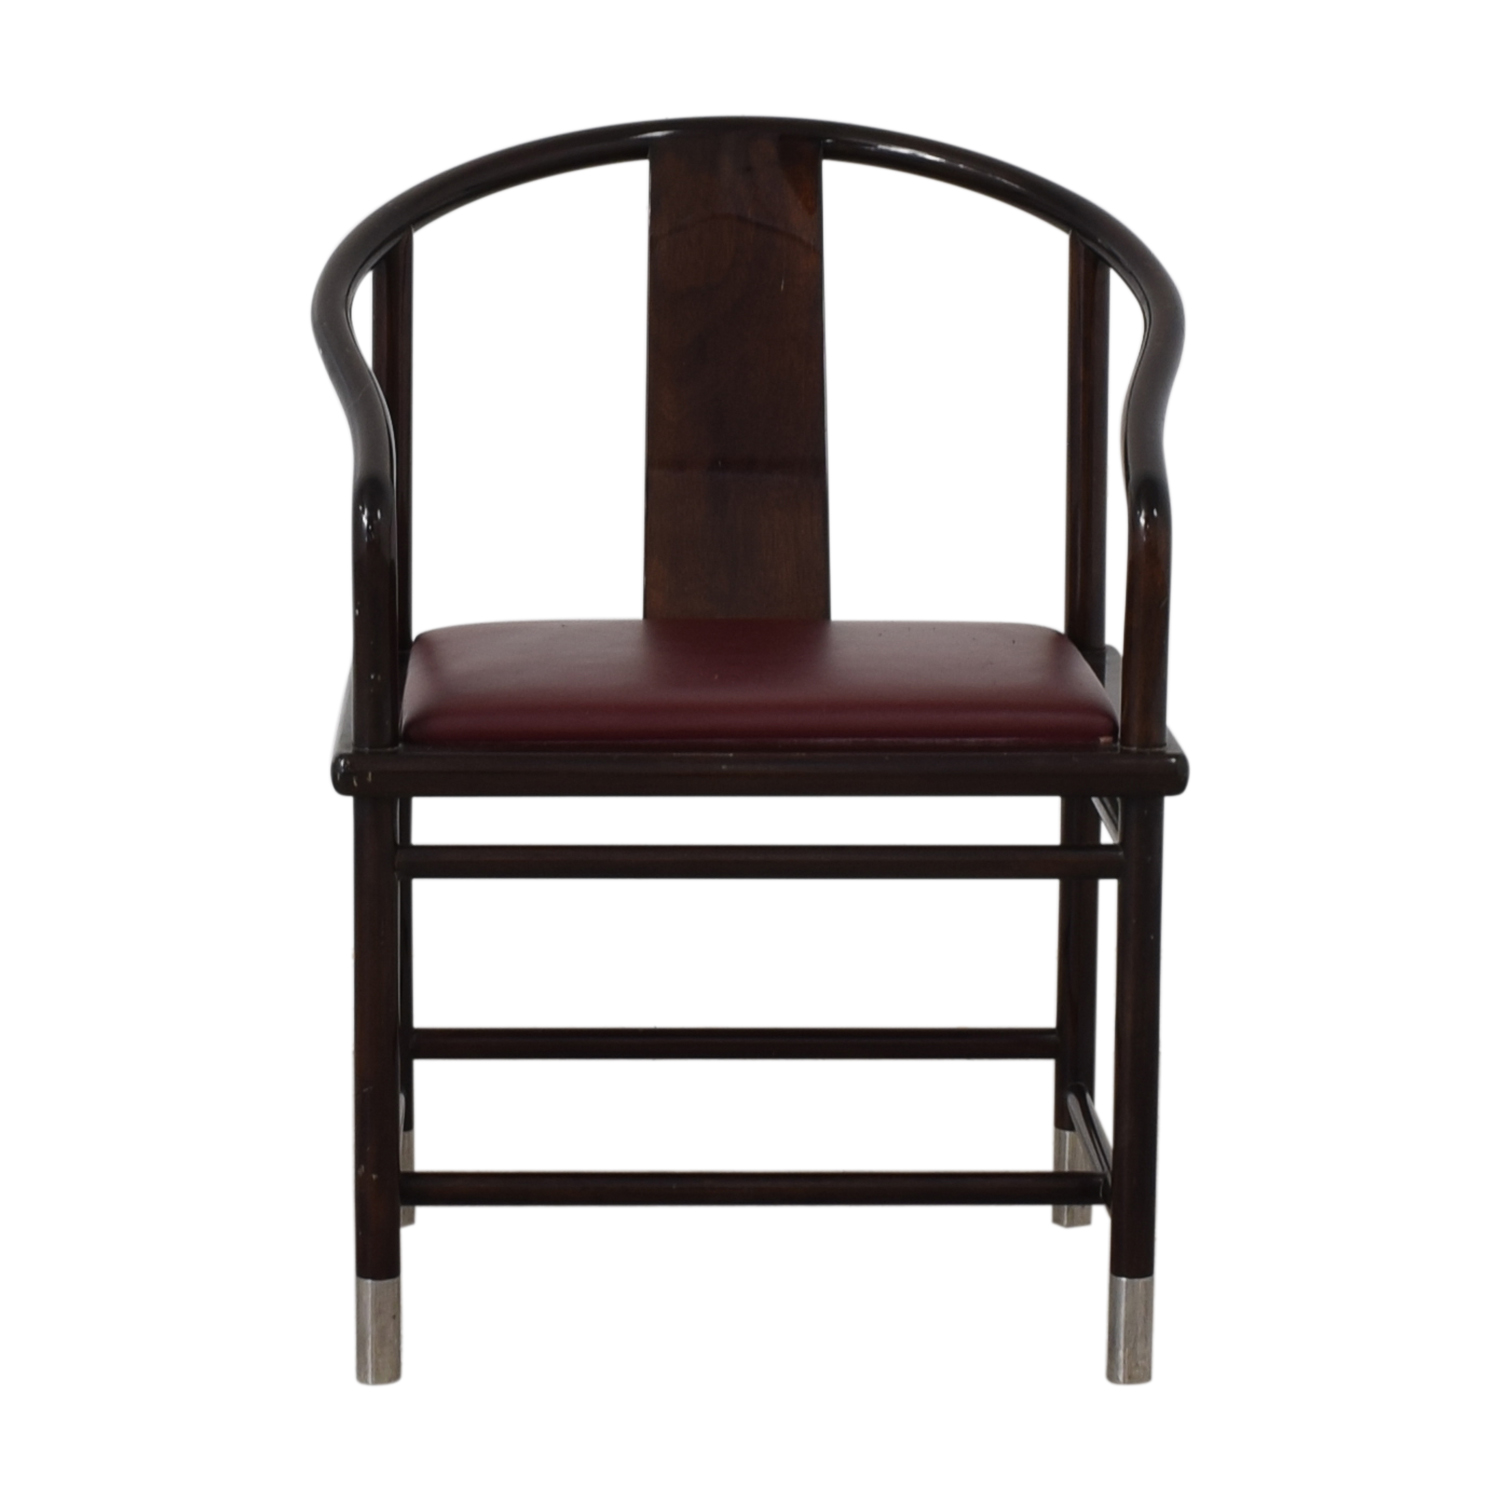 shop Brueton Brueton Wood and Burgundy Upholstered Accent Chair online